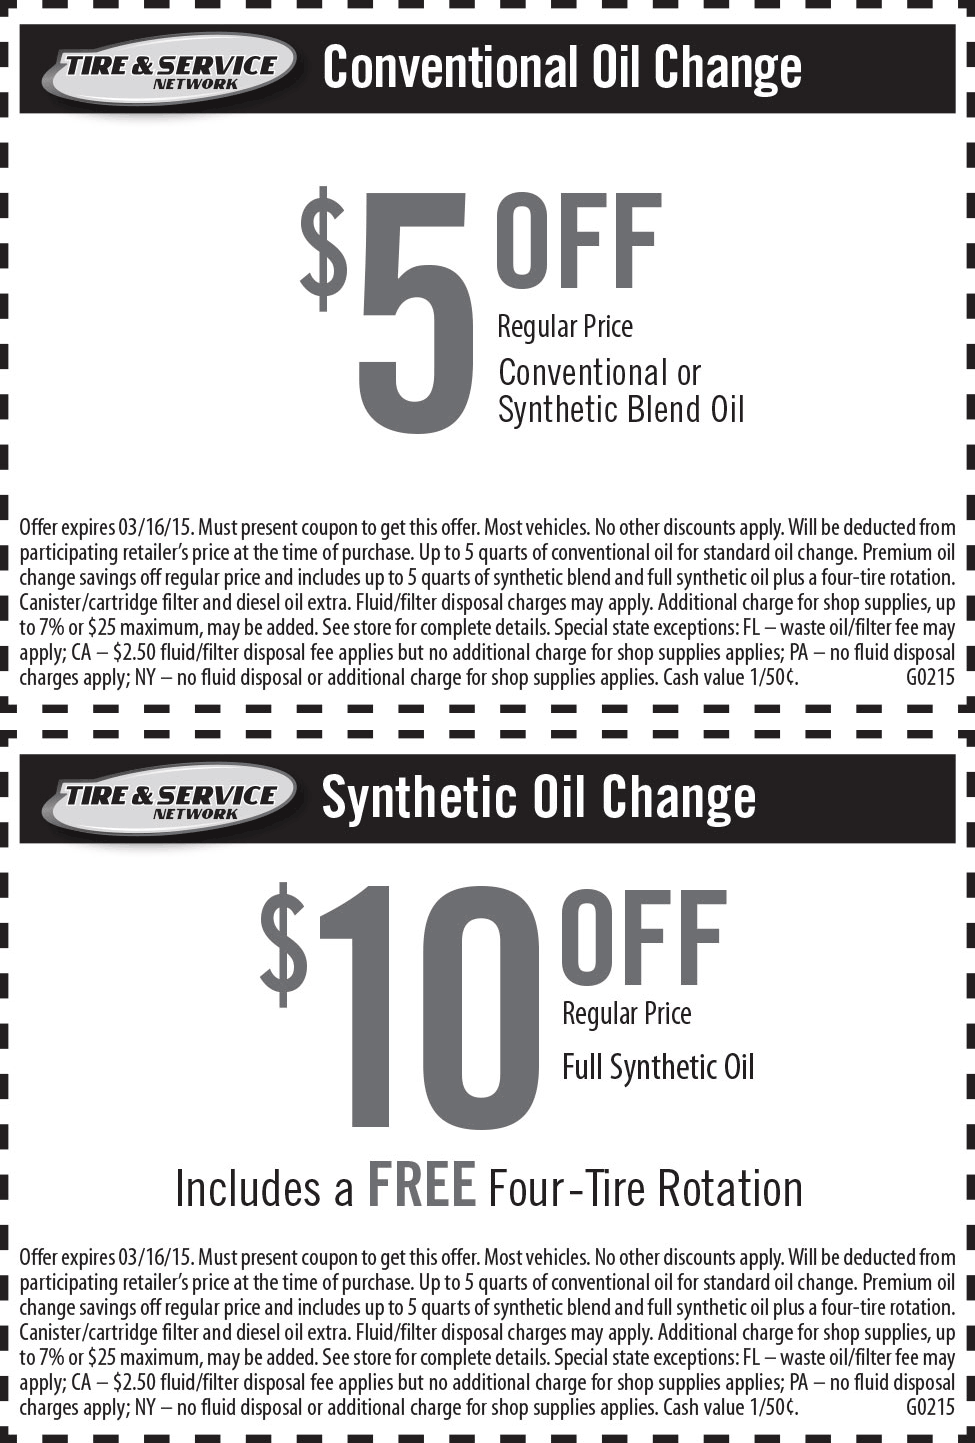 Goodyear Coupon September 2017 $5-10 off an oil change at Goodyear